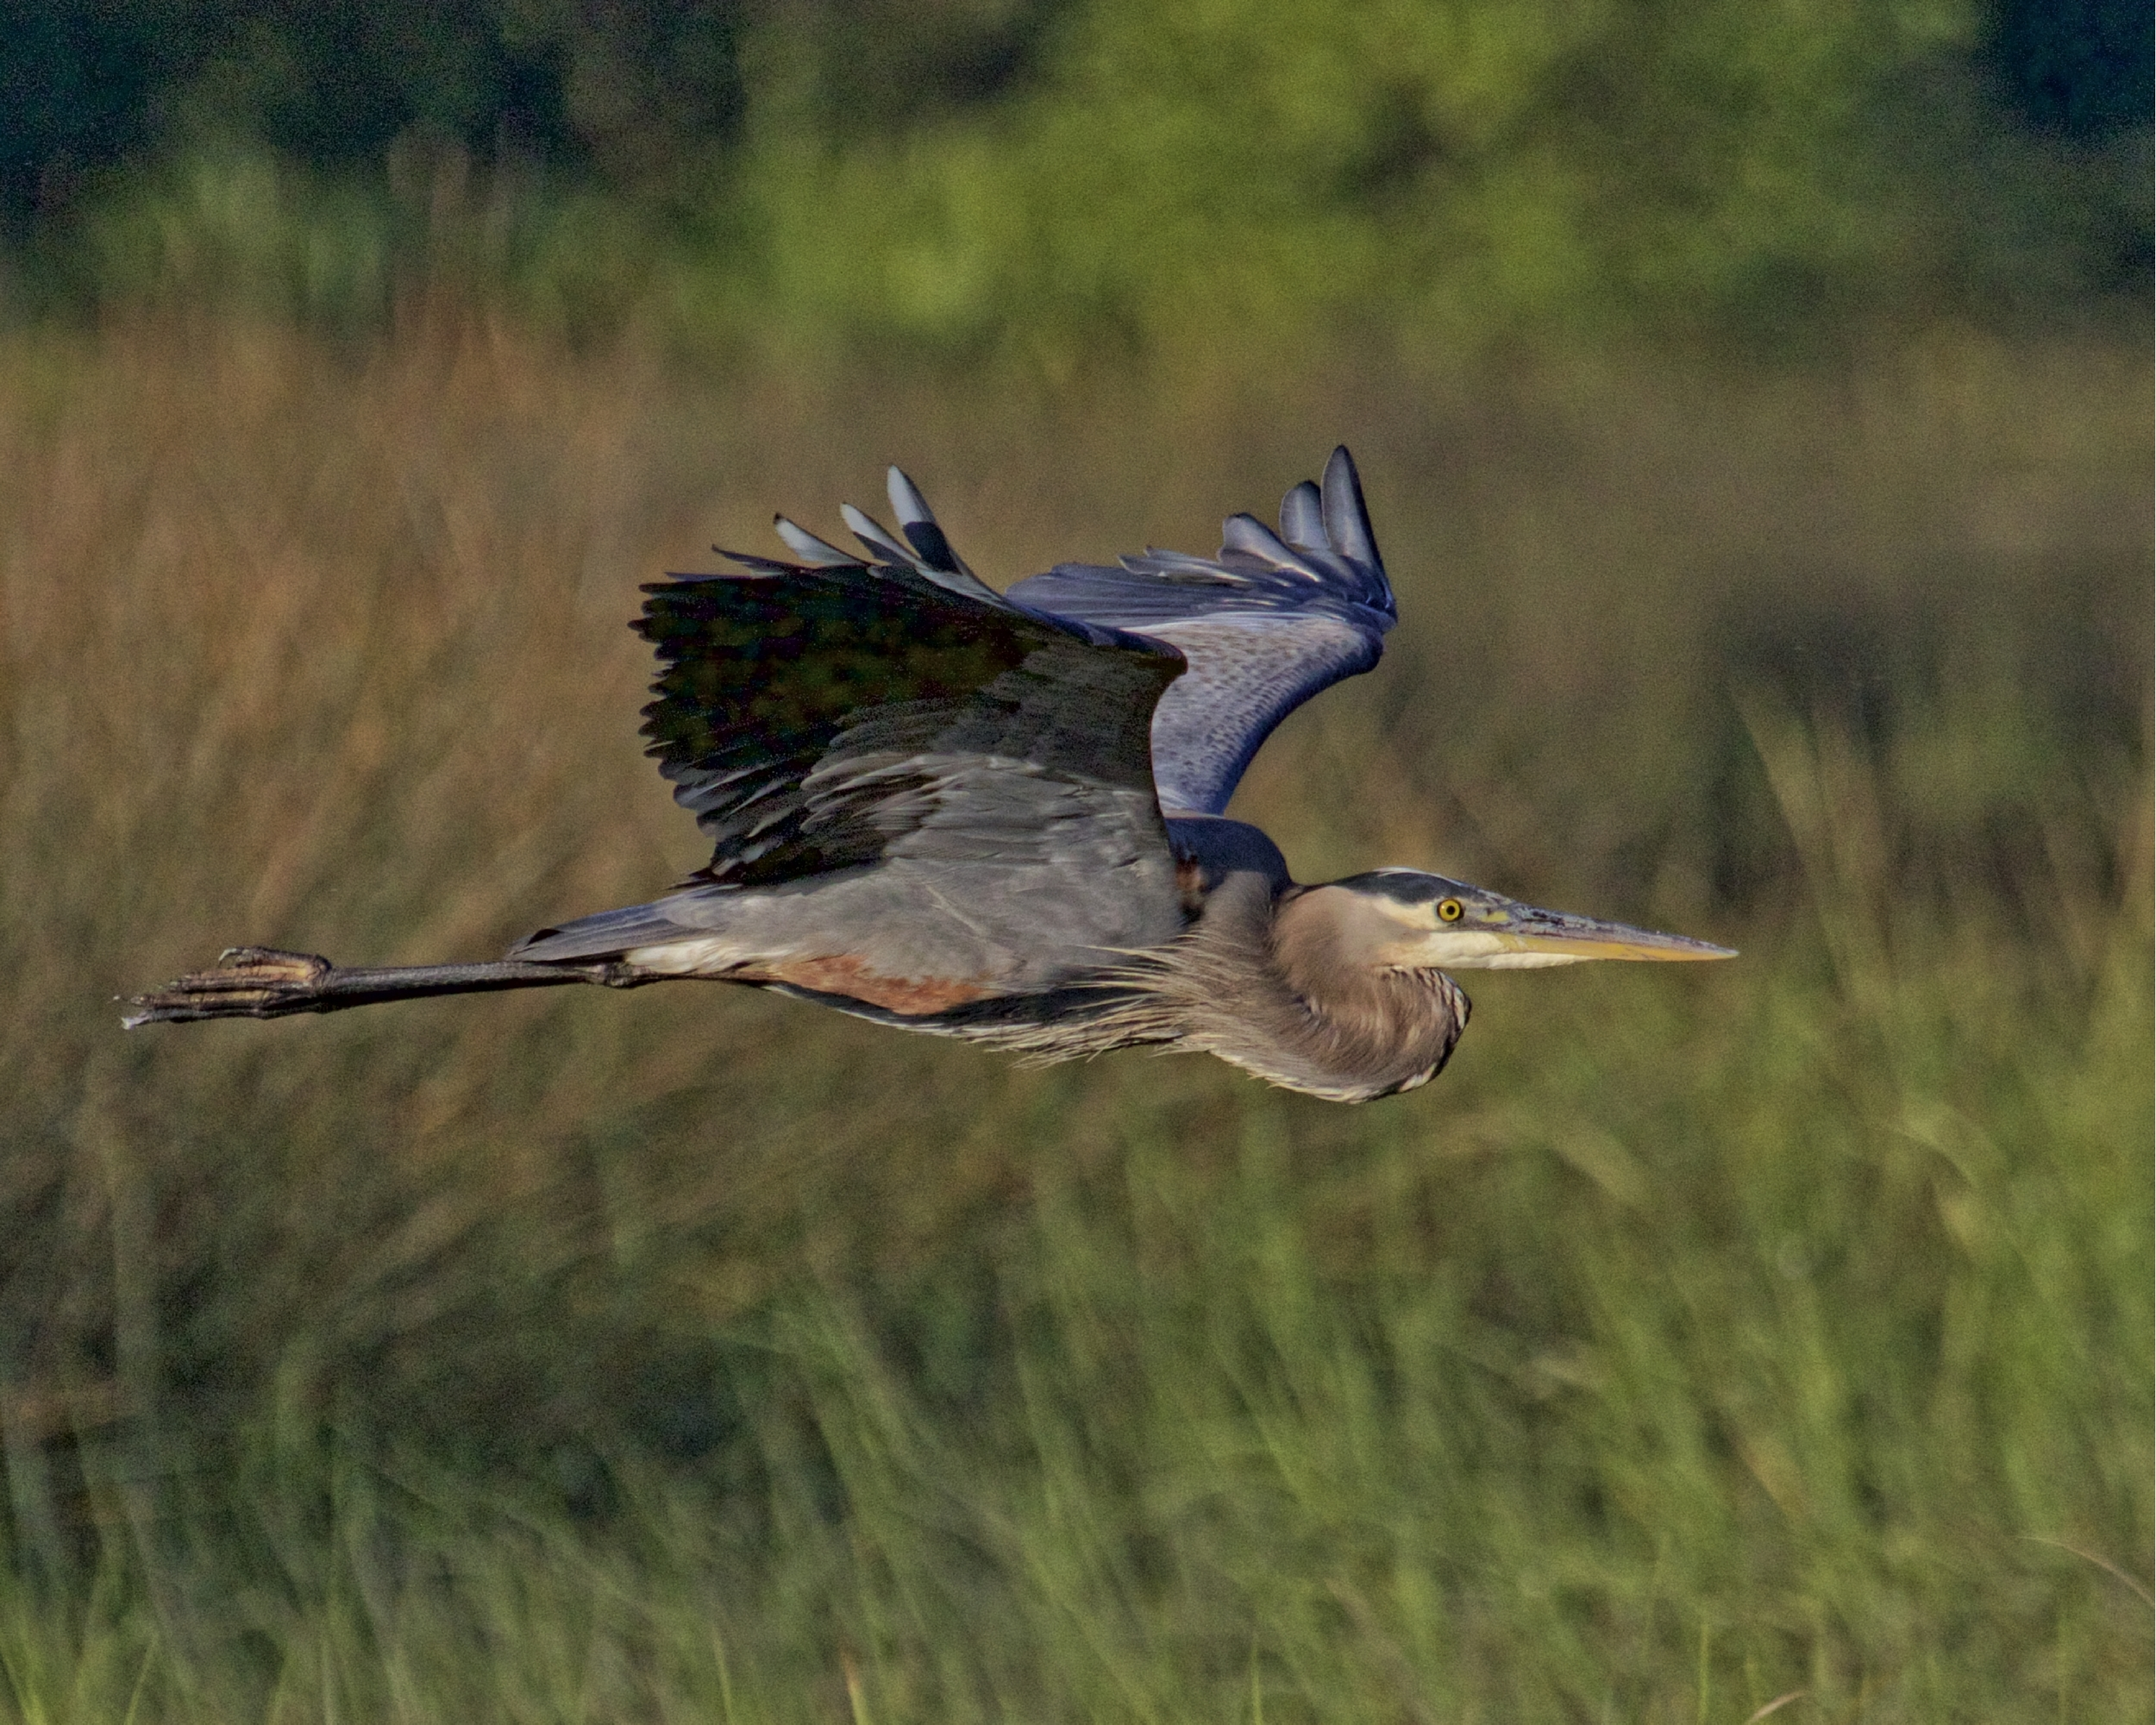 Old Man River The Great Blue Heron is still visiting his favorite hangouts...he glances at me as he wings by as if to say it's ok friend..